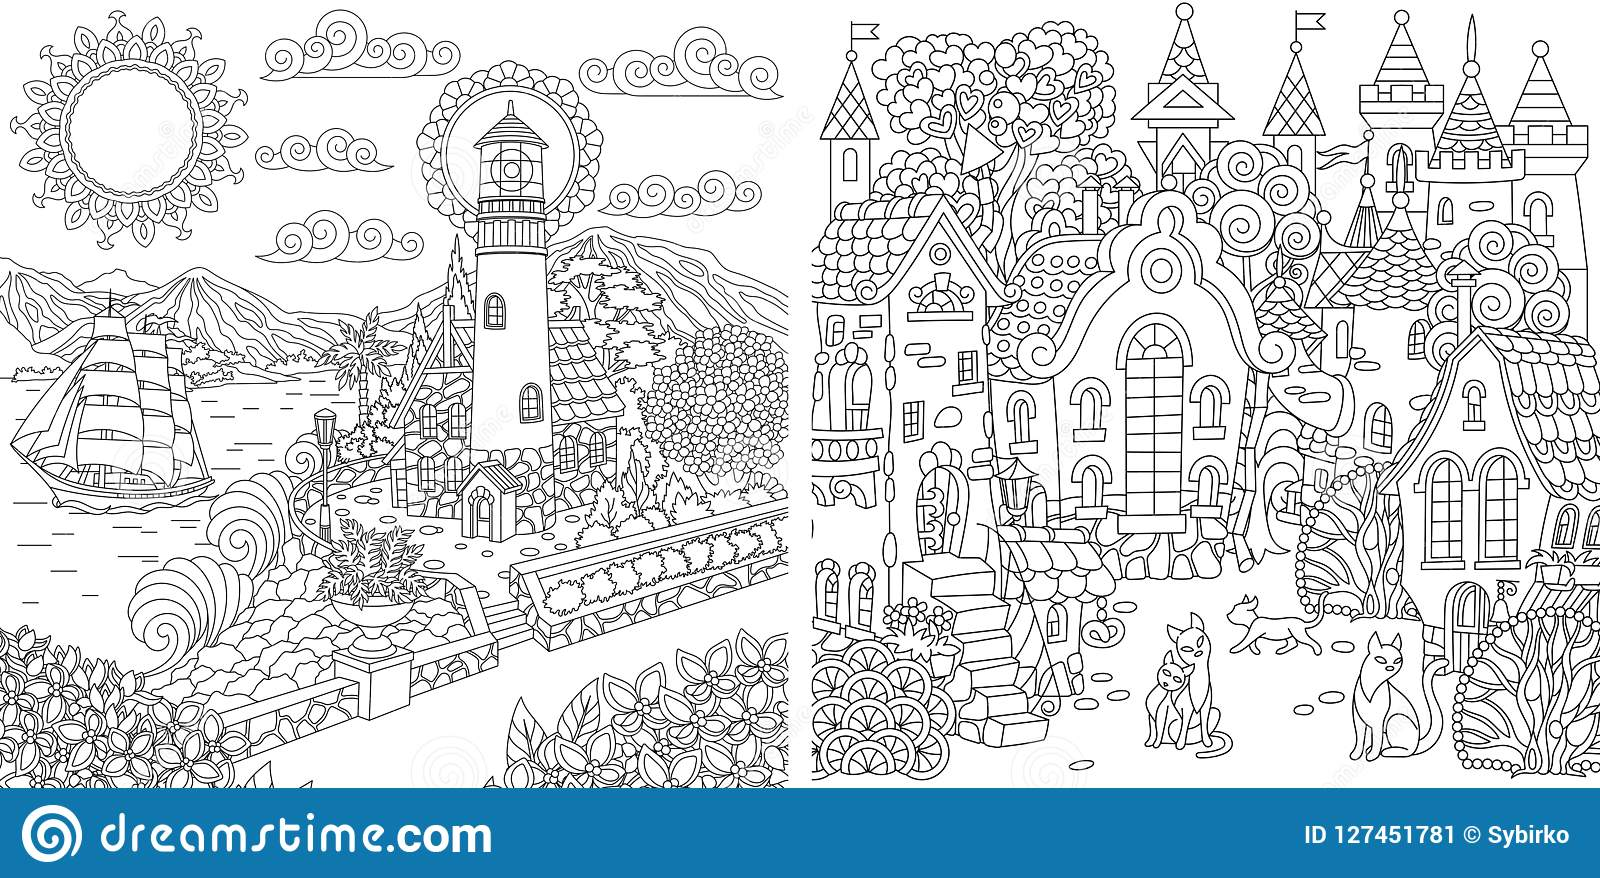 Coloring pages with town landscapes